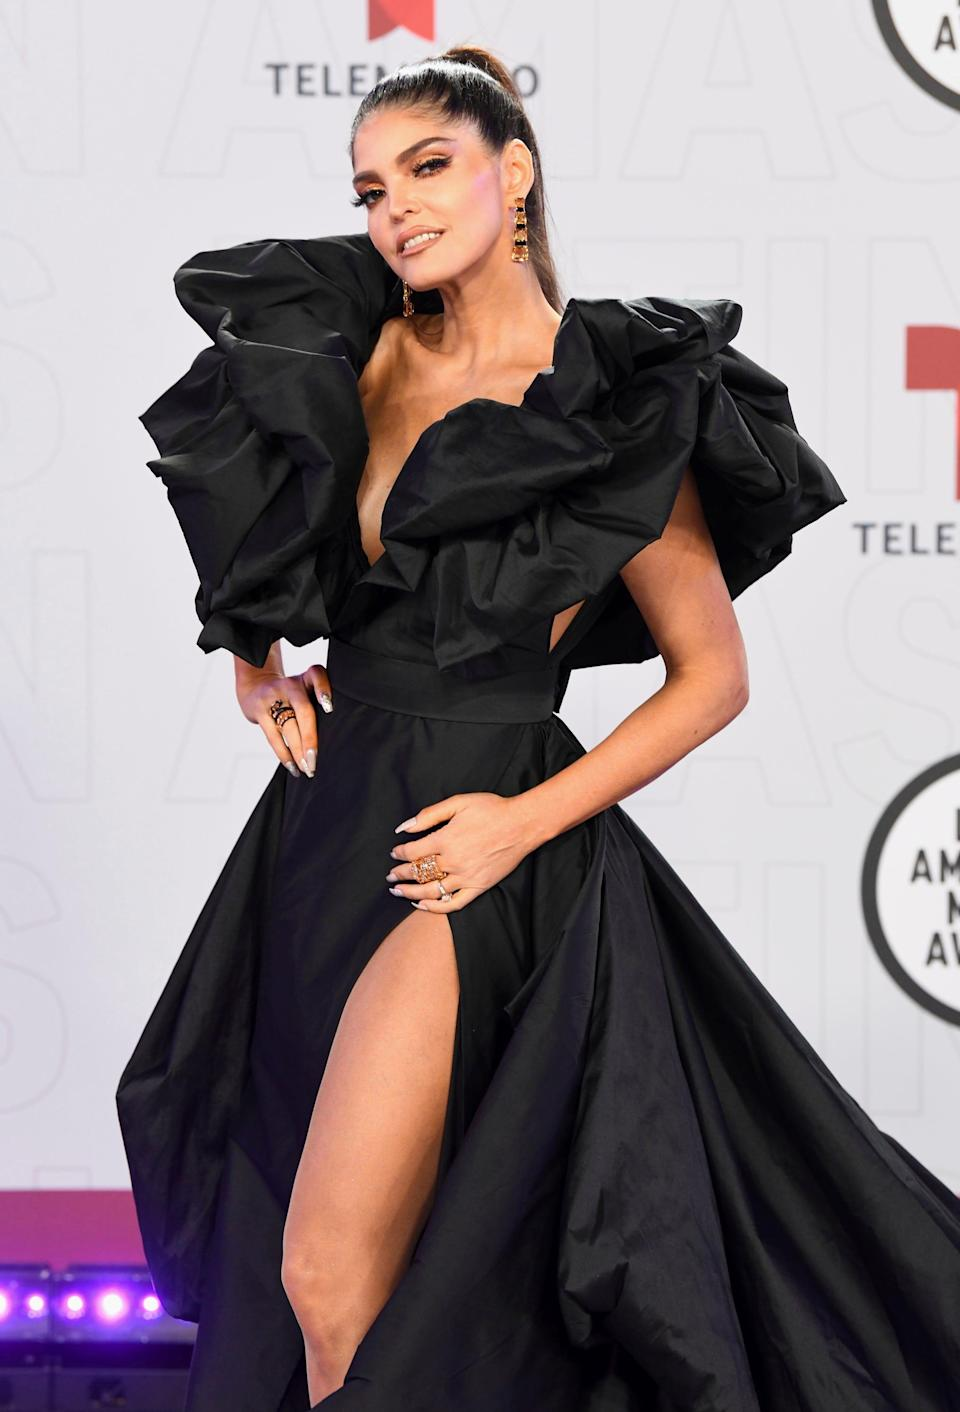 """Withmore than 20 years in the music industry, Ana Bárbara, also known as """"La reina grupera,"""" has dabbled in many genres including mariachi, pop, banda sinaloenseand romantic ballads.Her hits include """"Bandido,"""" """"La trampa,"""" """"Quise olvidar,"""" """"Me asusta pero me gusta,"""" and her discography includes 11 albums."""